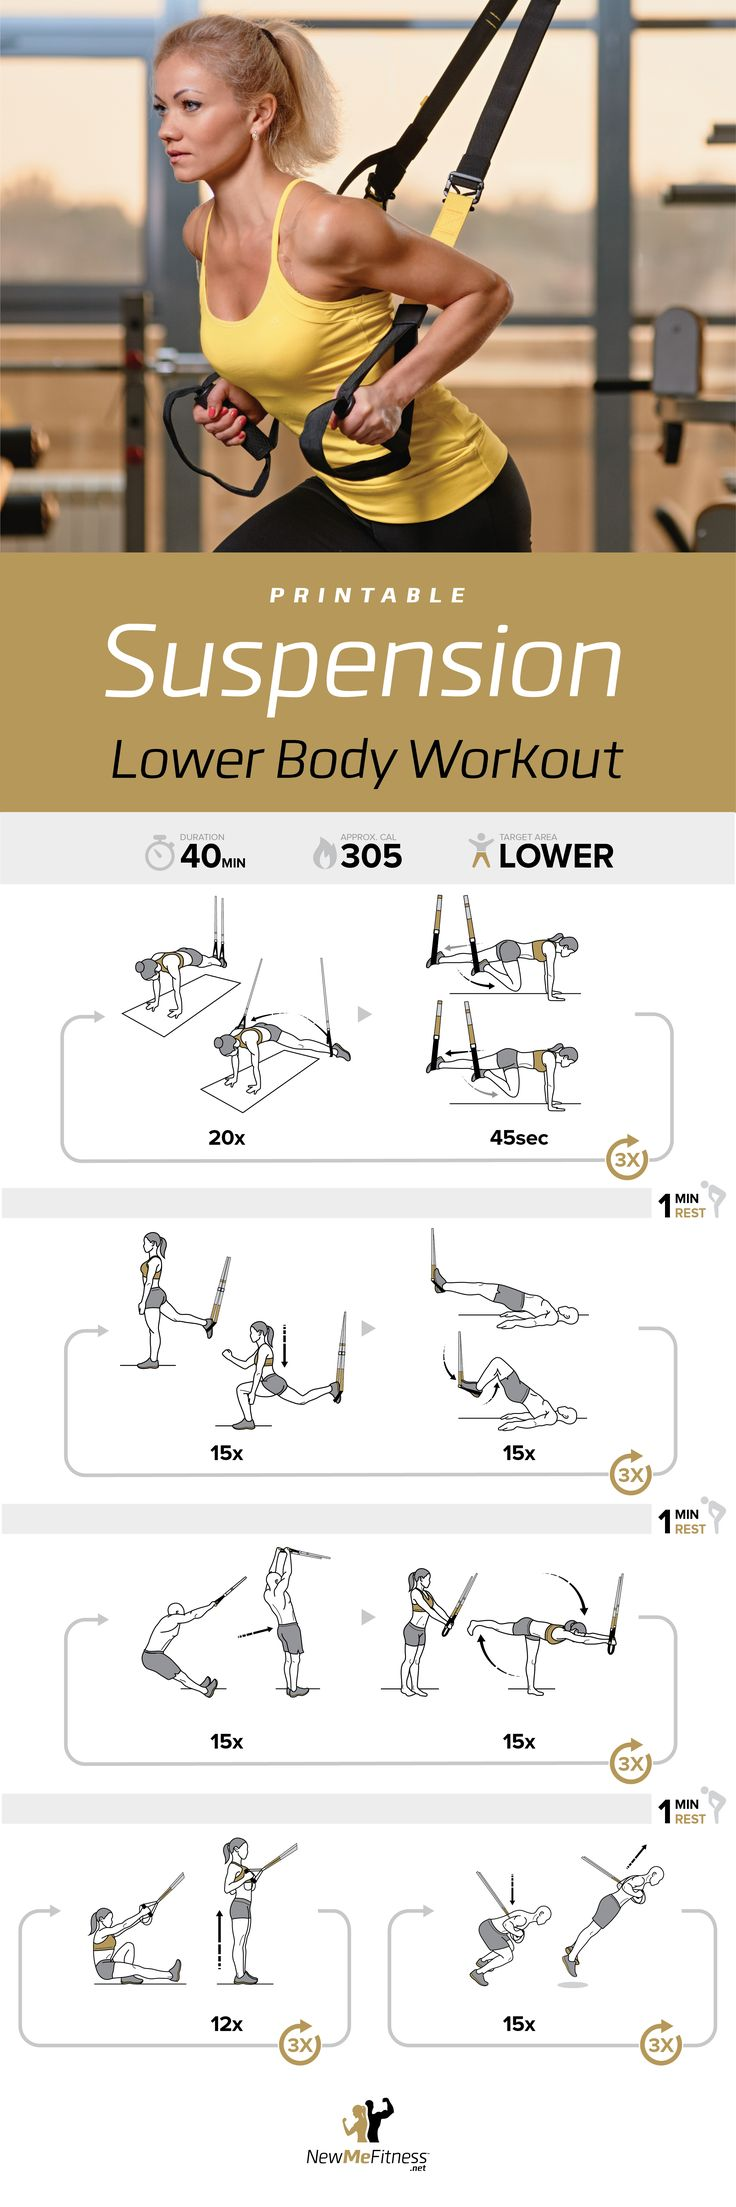 TRX Suspension Workout | Posted by: AdvancedWeightLossTips.com